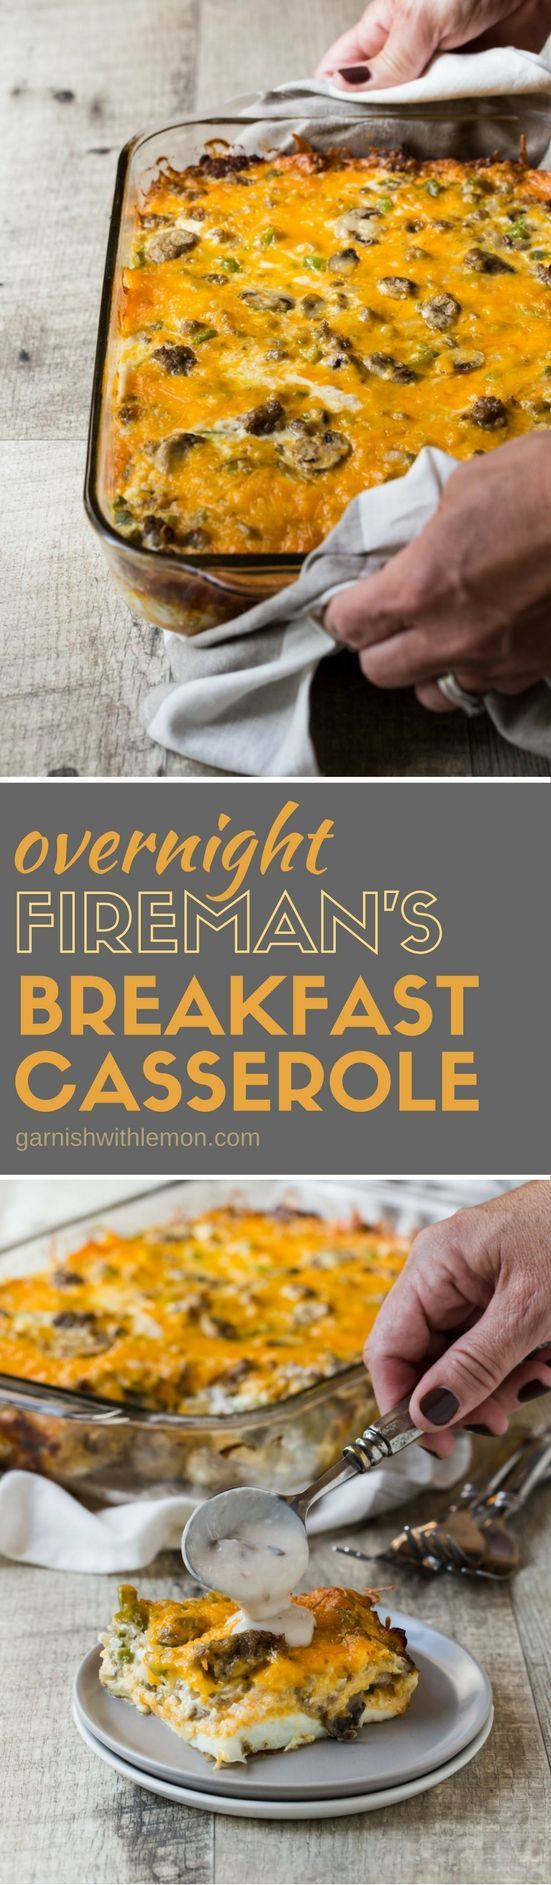 This recipe for Fireman's Overnight Breakfast Casserole has been in our family for decades. It's an easy, make-ahead recipe that is perfect for holiday brunches! recipe for Fireman's Overnight Breakfast Casserole has been in our family for decades. It's an easy, make-ahead recipe that is perfect for holiday brunches!